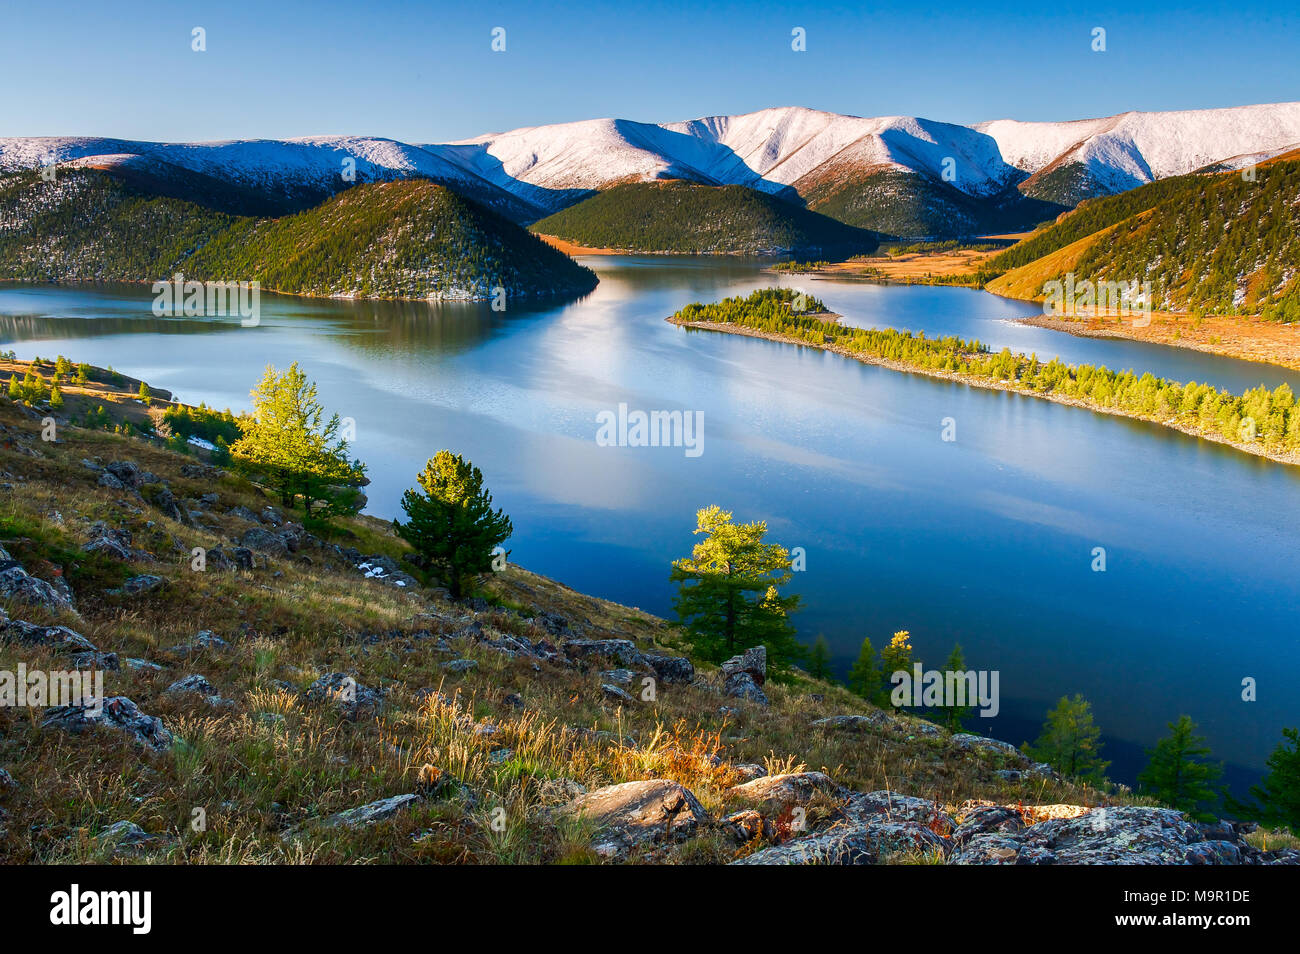 Lake Shireet with snow-covered mountains, Mongolia - Stock Image